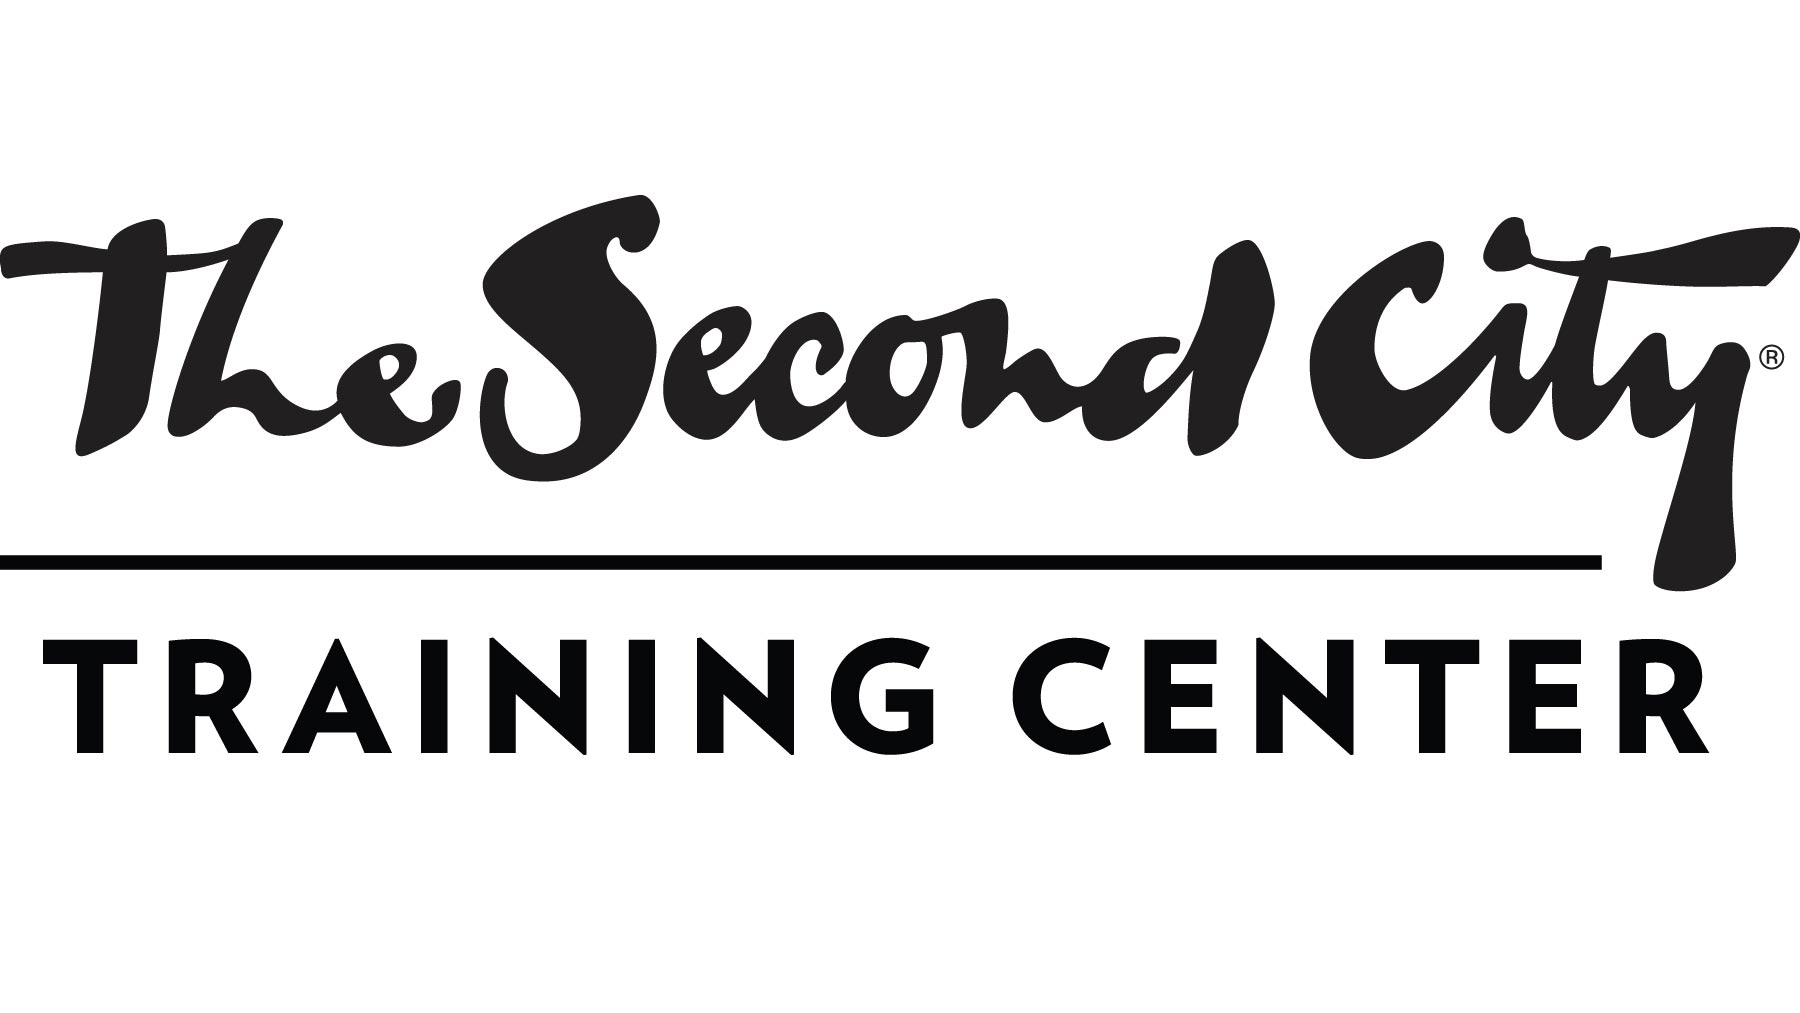 White Training Center Logo